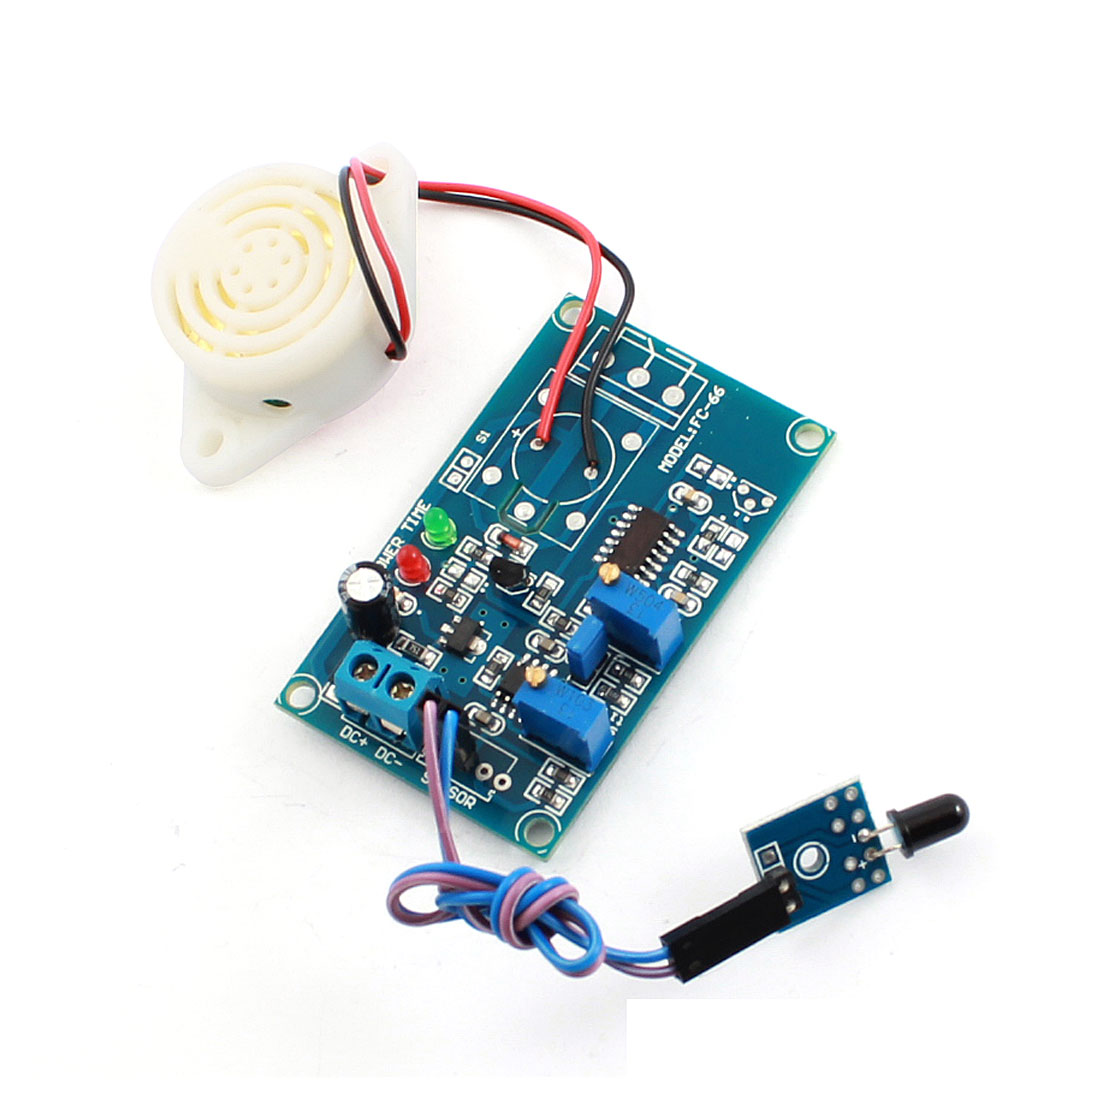 FC-66 DC24V Fire Fighting Light Detection Flame Sensor Infrared Receiver Alarm Buzzer Time Delay Module